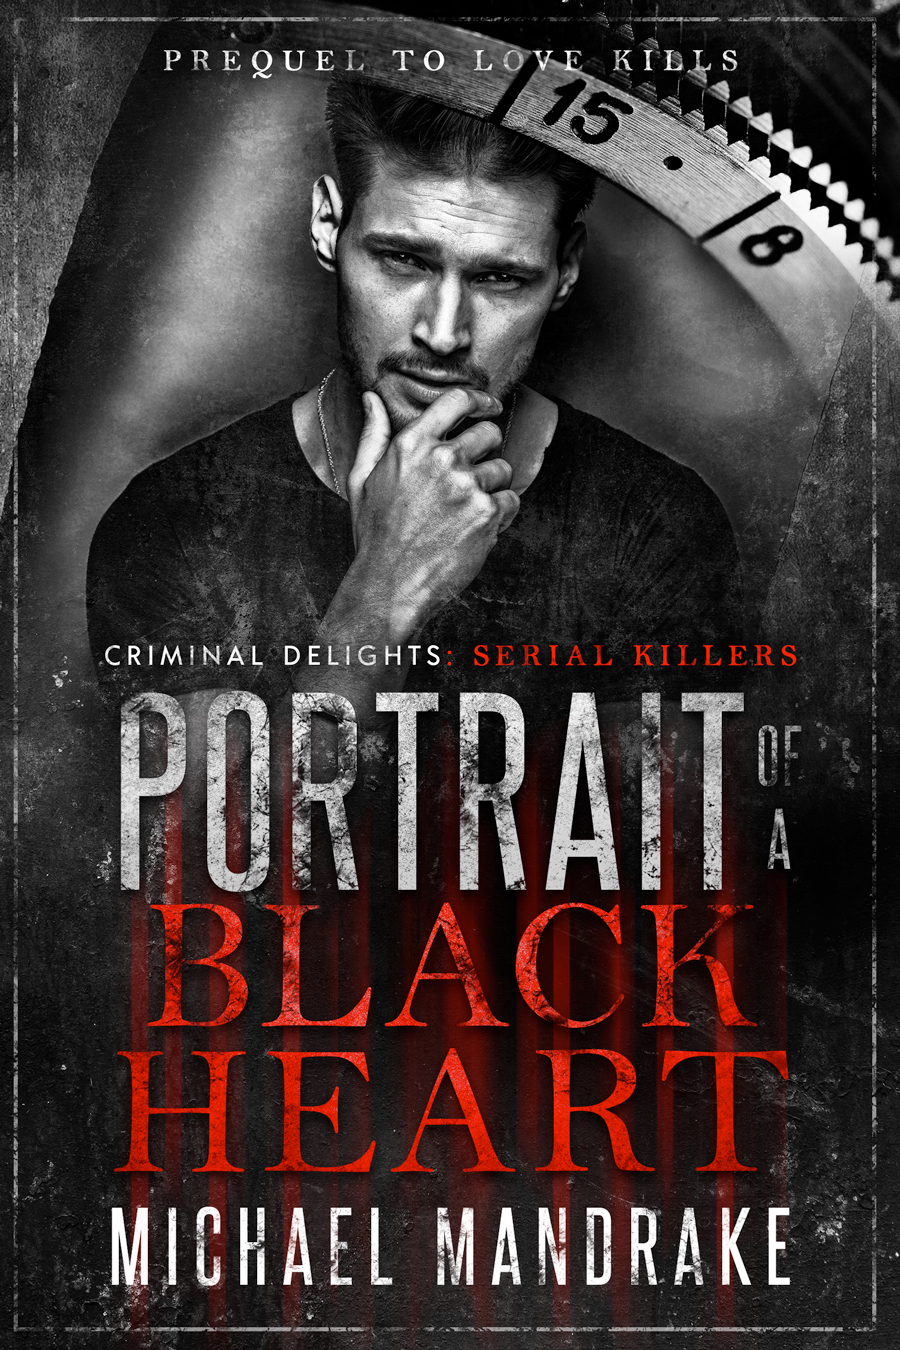 Great review for Portrait of a Black Heart